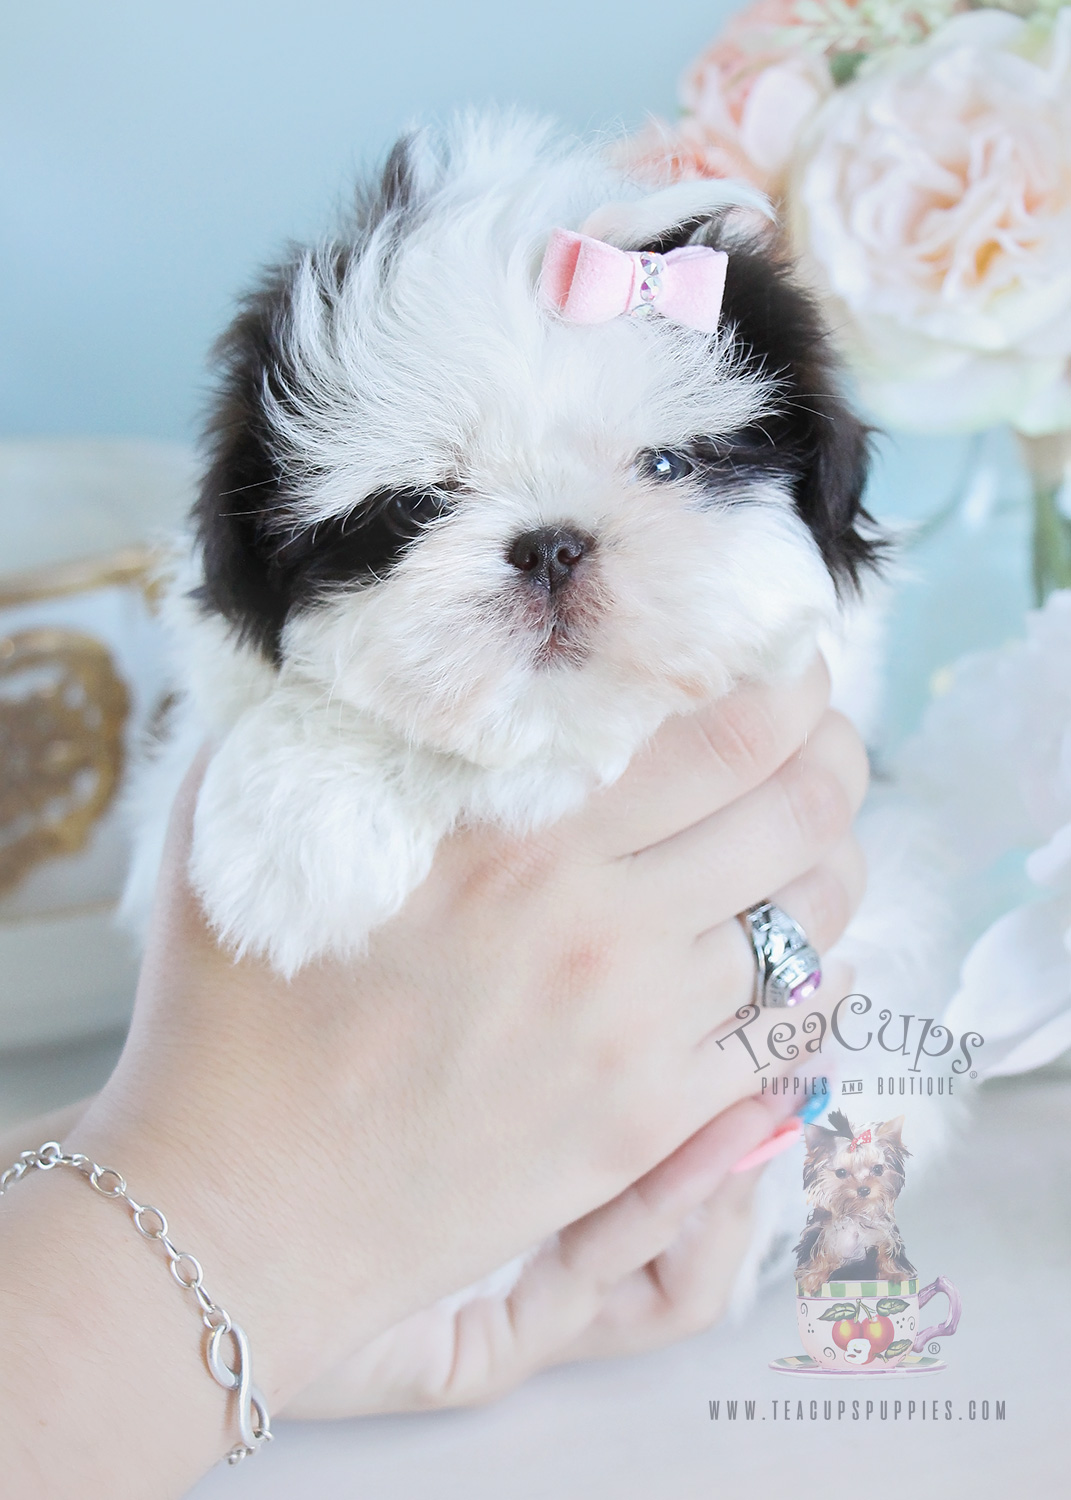 205 Shih Tzu Puppy For Sale Teacups Puppies